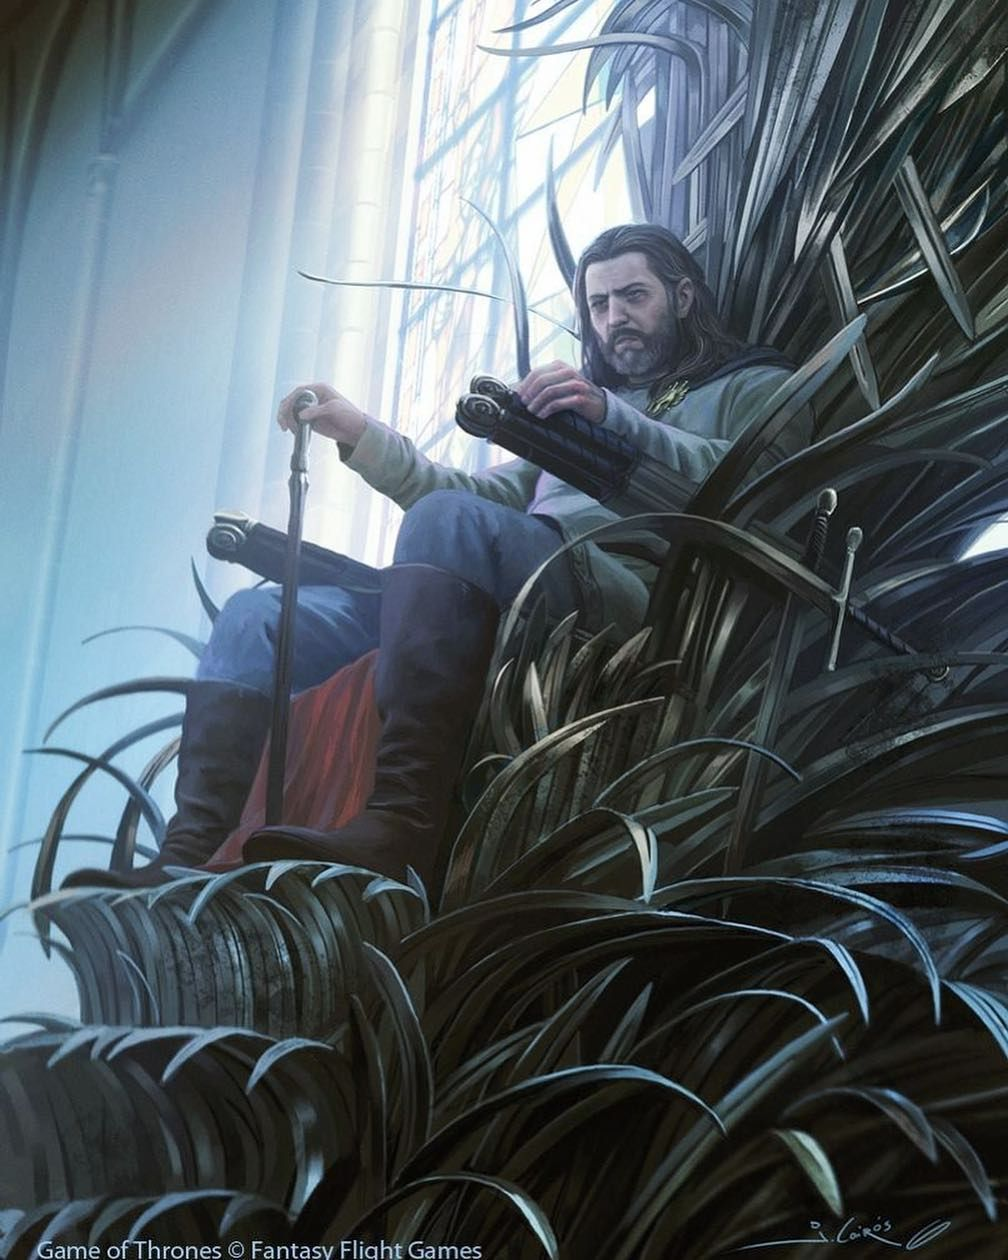 Eddard Stark In The Iron Throne. Surely My Last